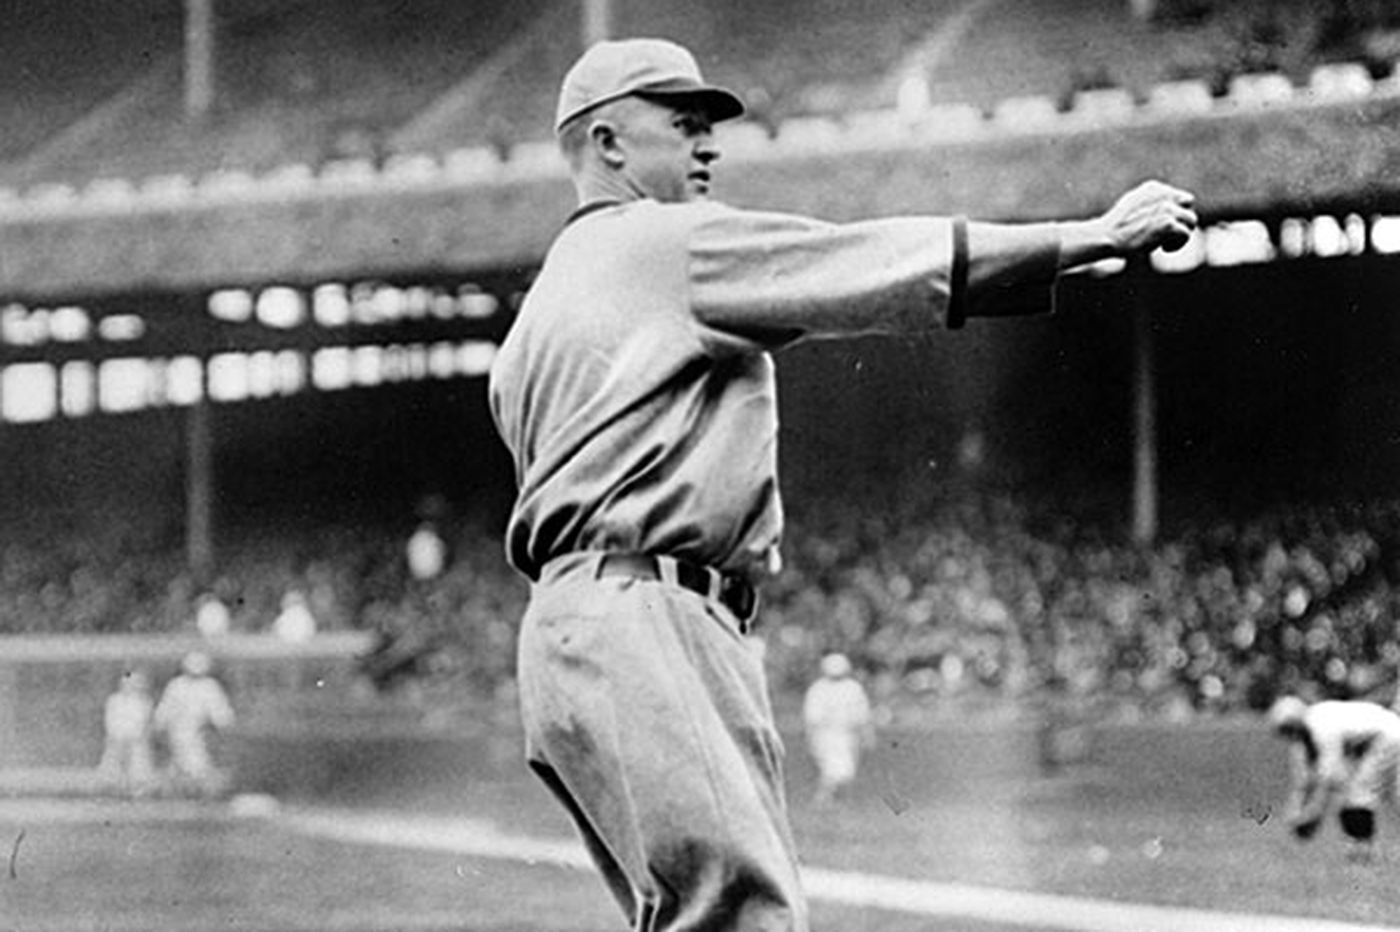 Swift rise, dramatic fall: 1915 Phillies great Grover Cleveland Alexander